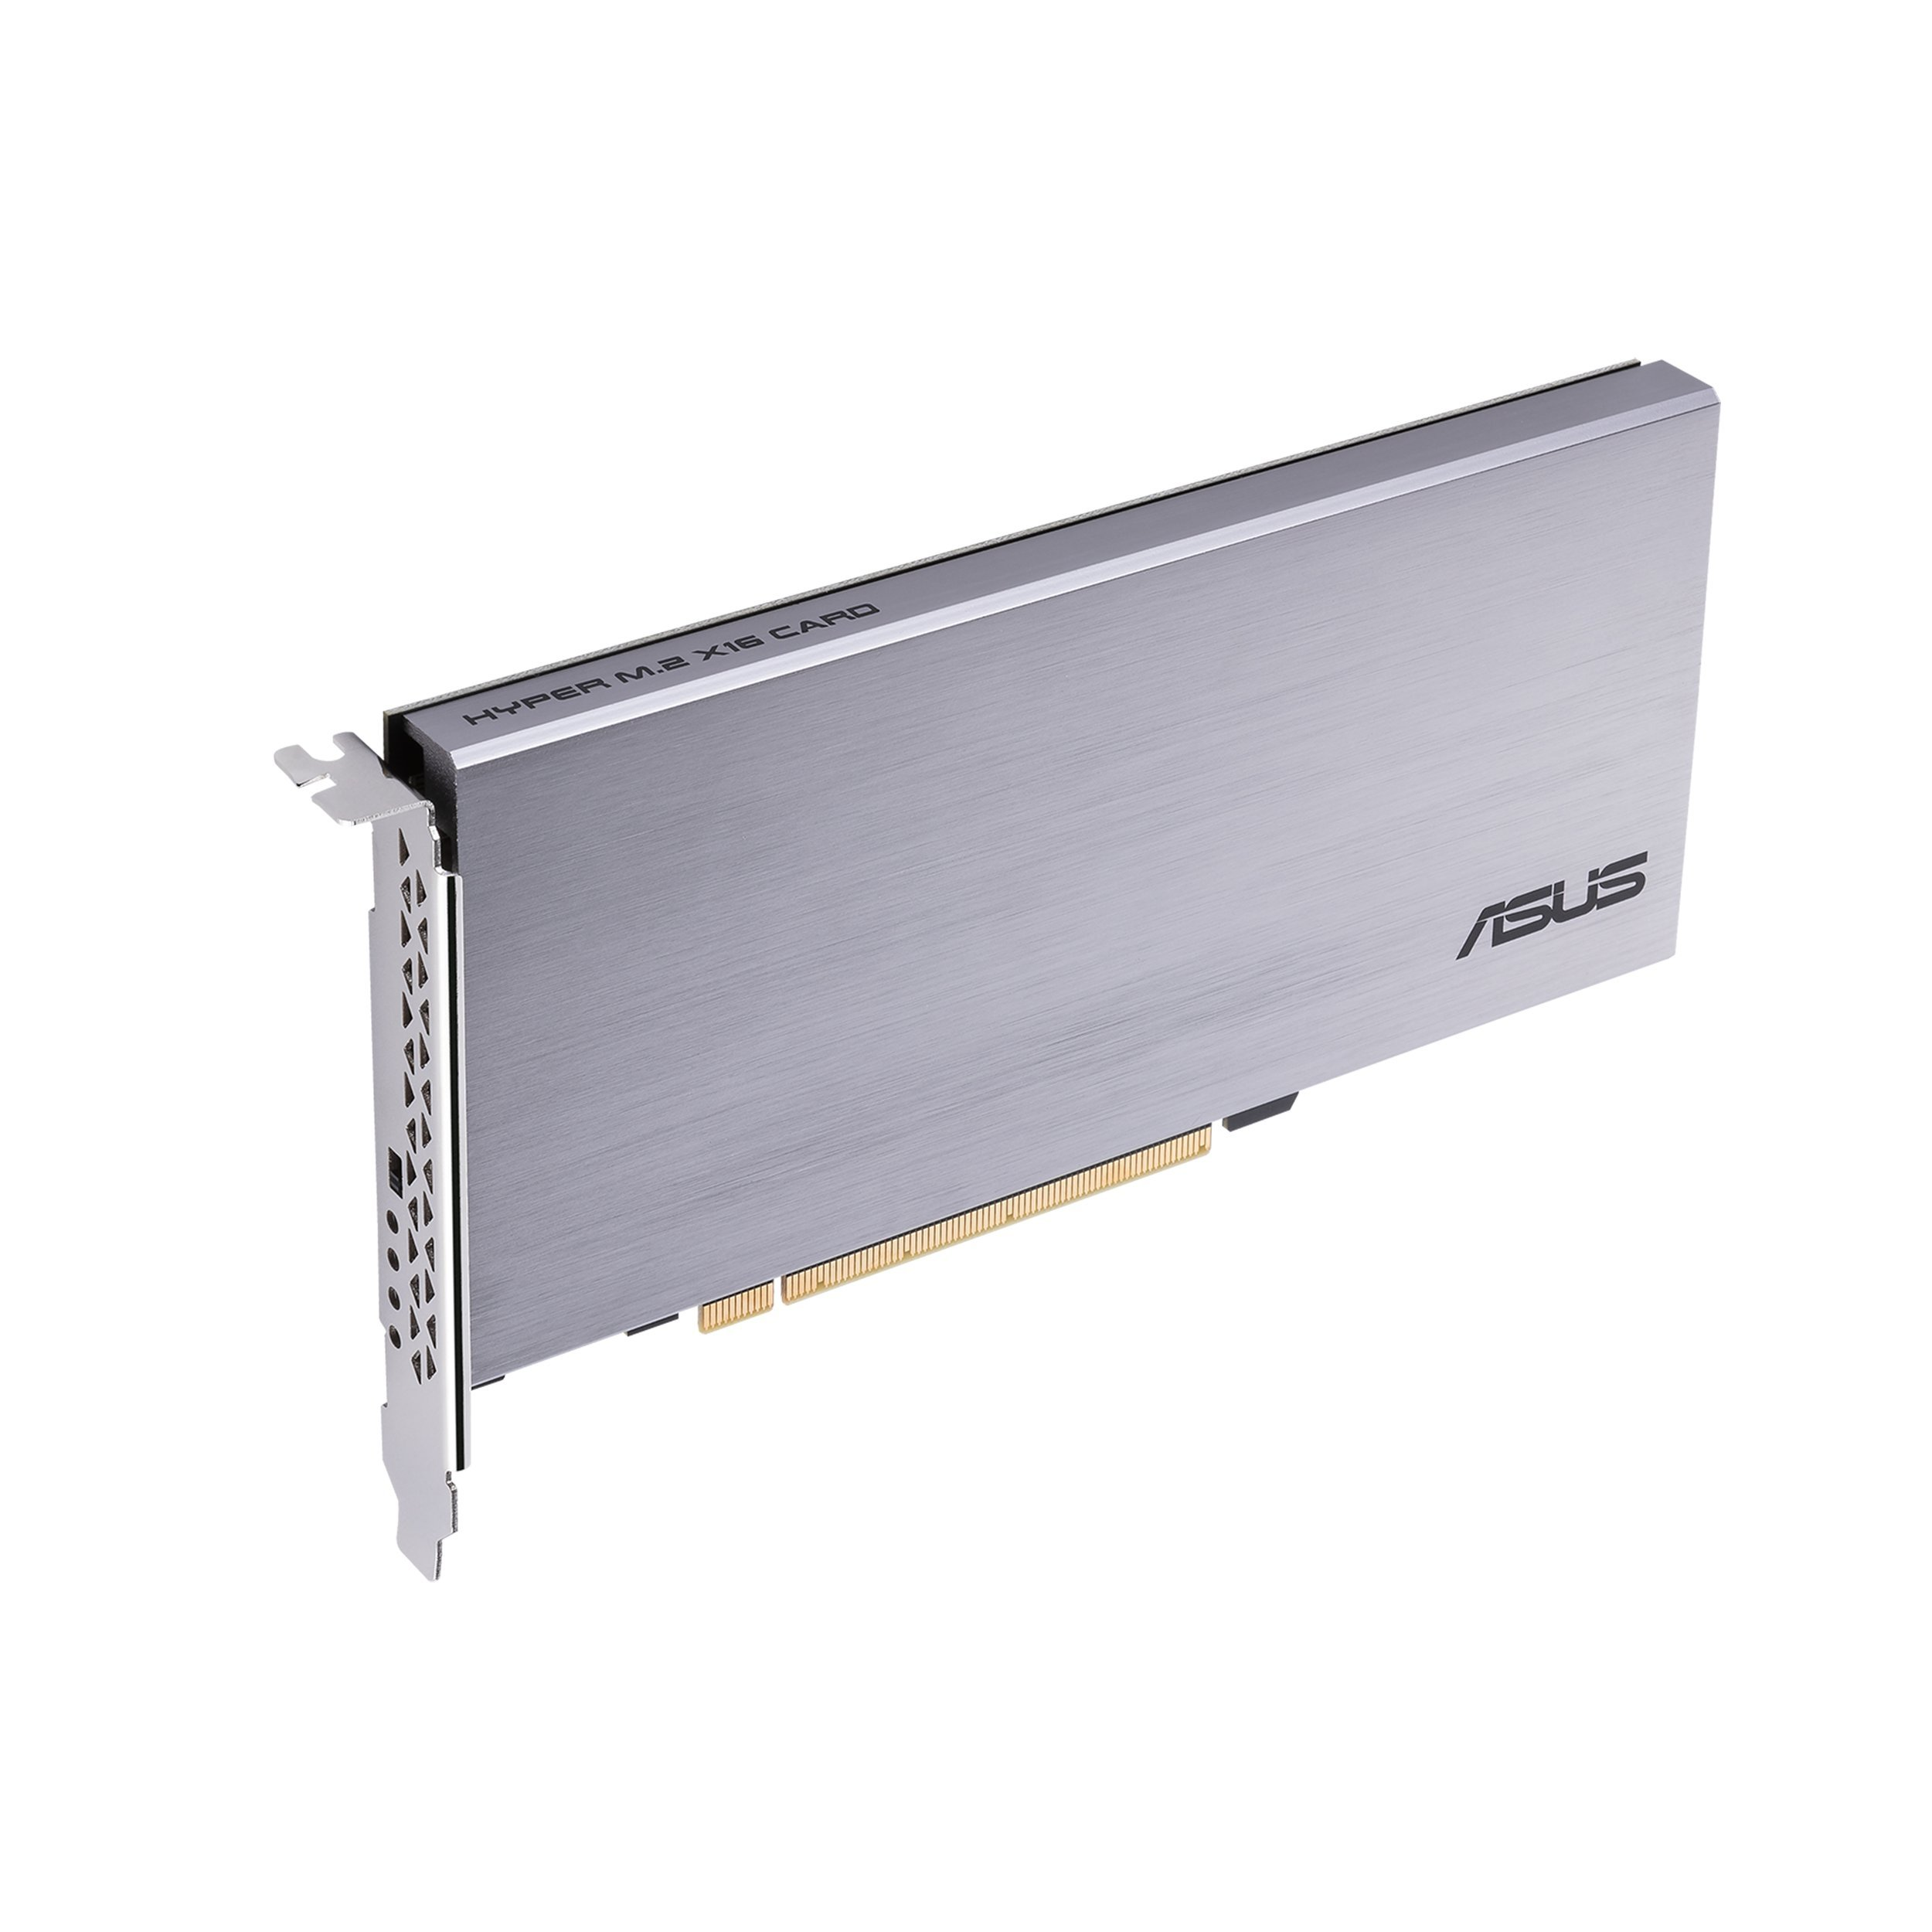 ASUS Hyper M.2 x16 Card Expansion NV Me M.2 drives and speed up to 128Gbps Components by Asus (Image #1)